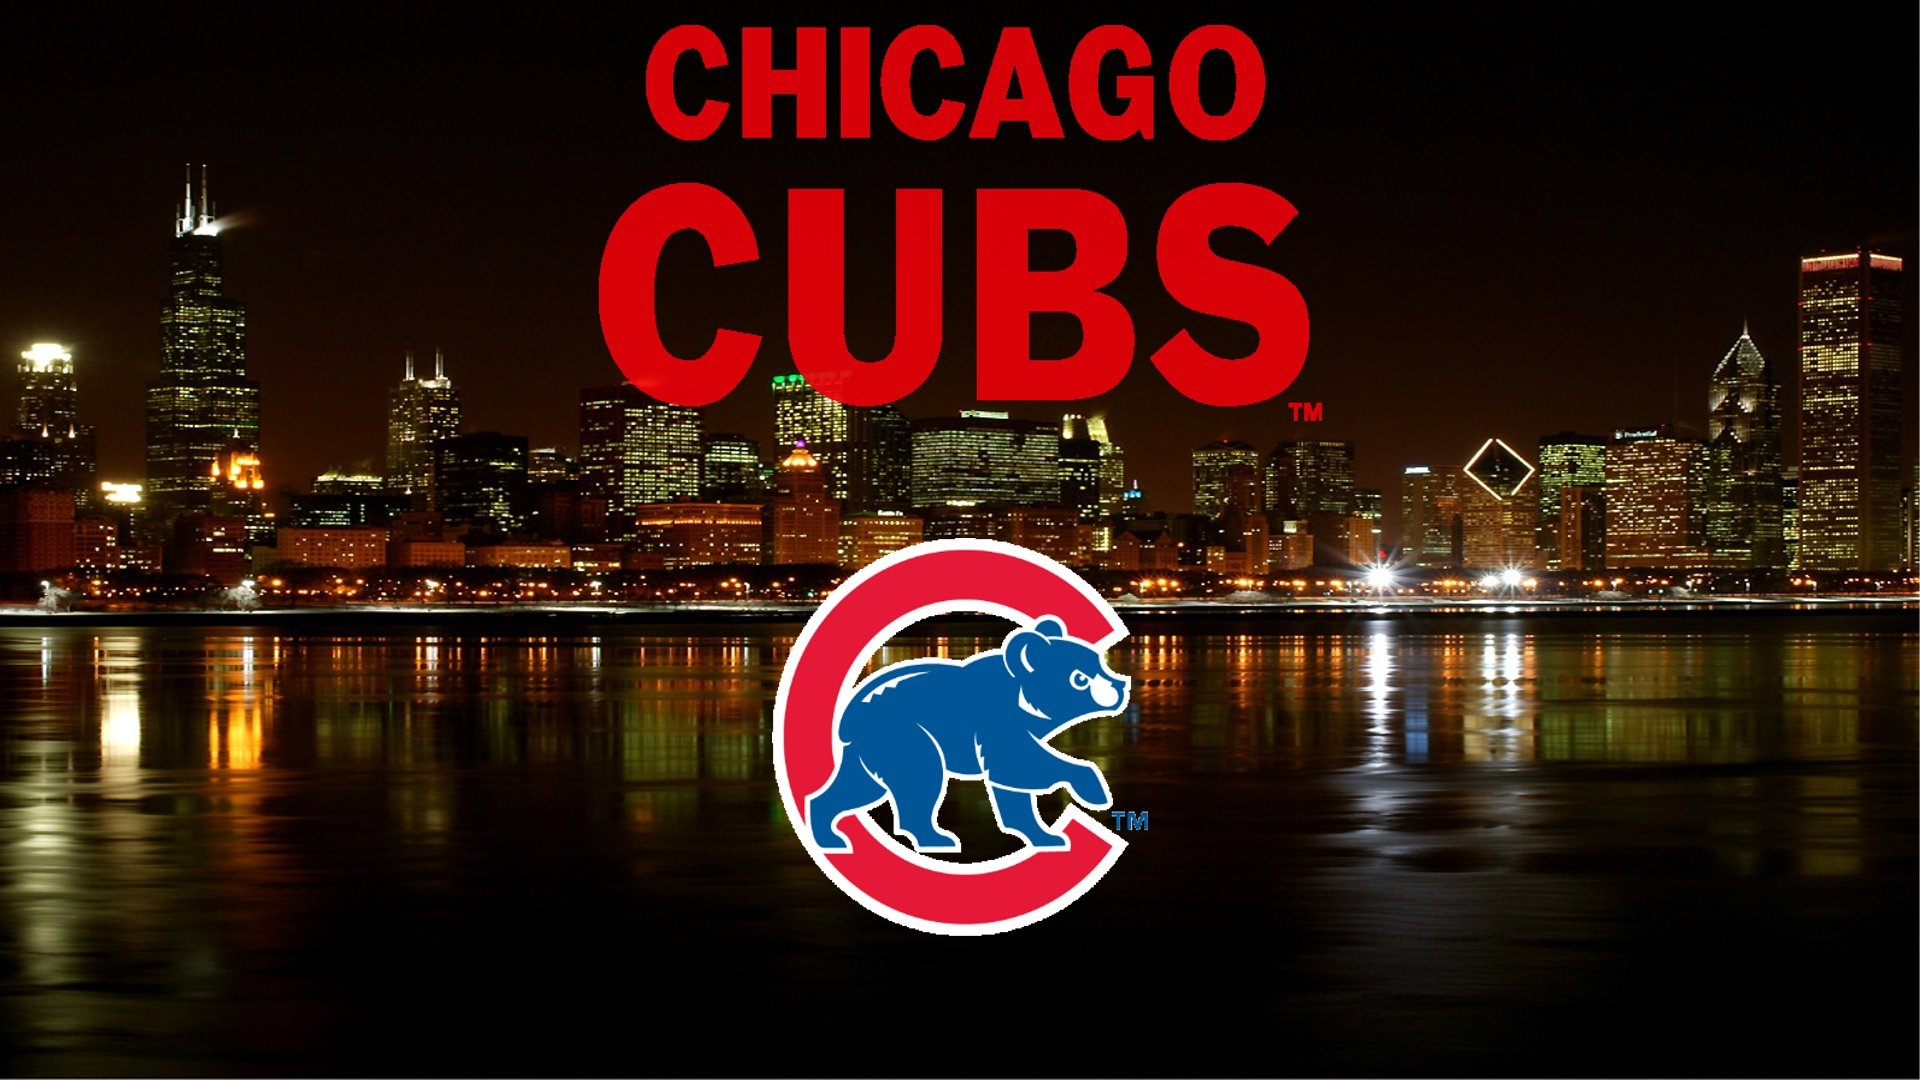 Chicago Cubs Skyline Wallpaper